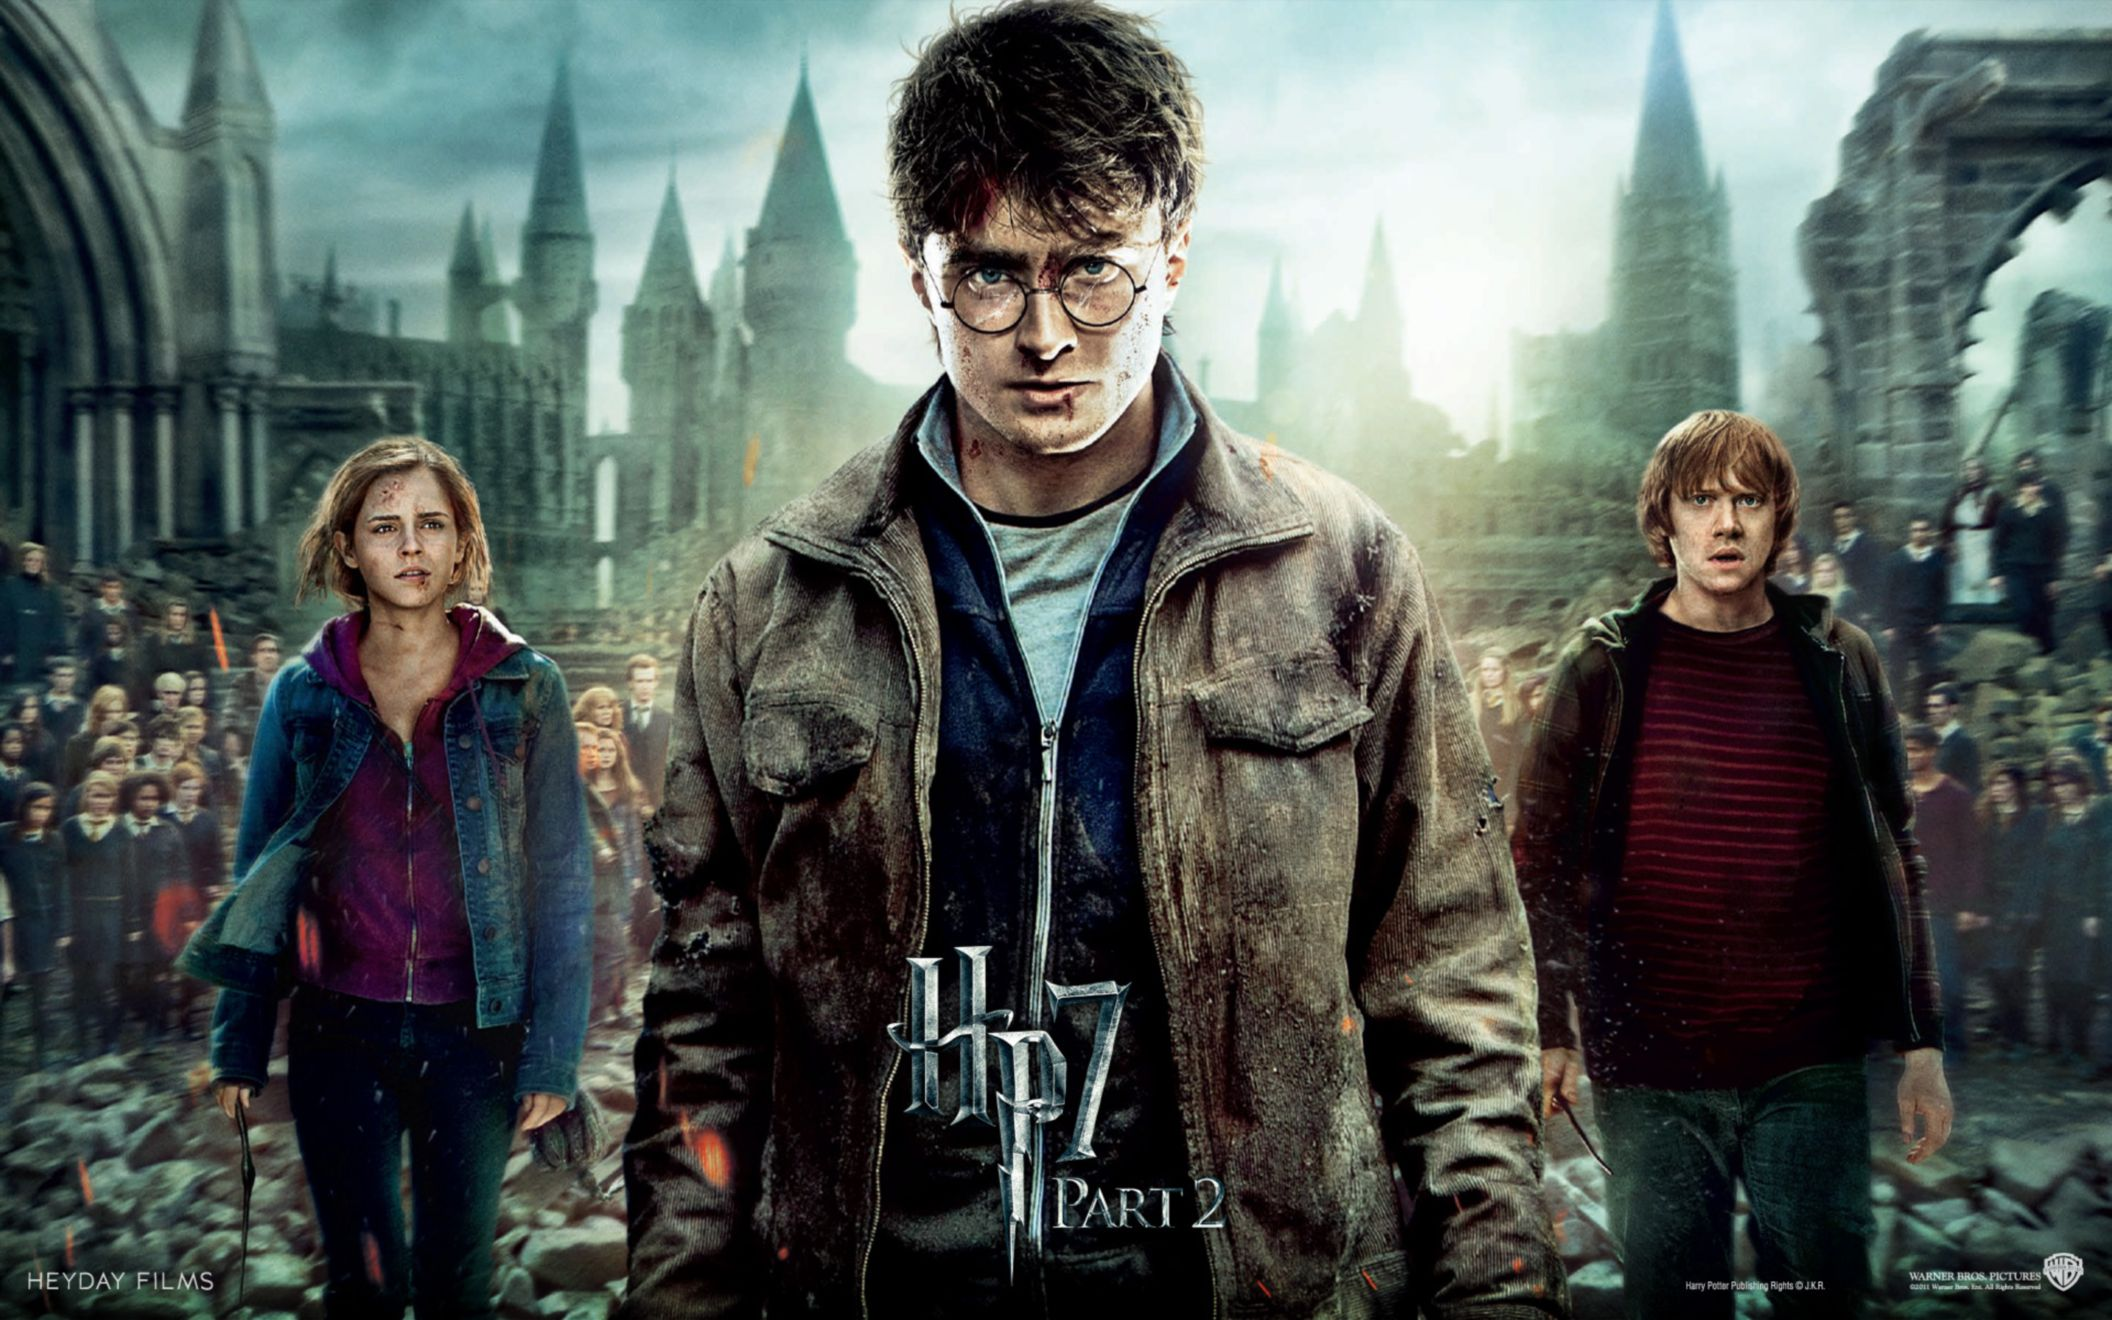 Good Wallpaper Harry Potter Ultra Hd - Harry-Potter-And-The-Deathly-Hallows-Part-2-Wide-Wallpaper  Snapshot_25758.jpg